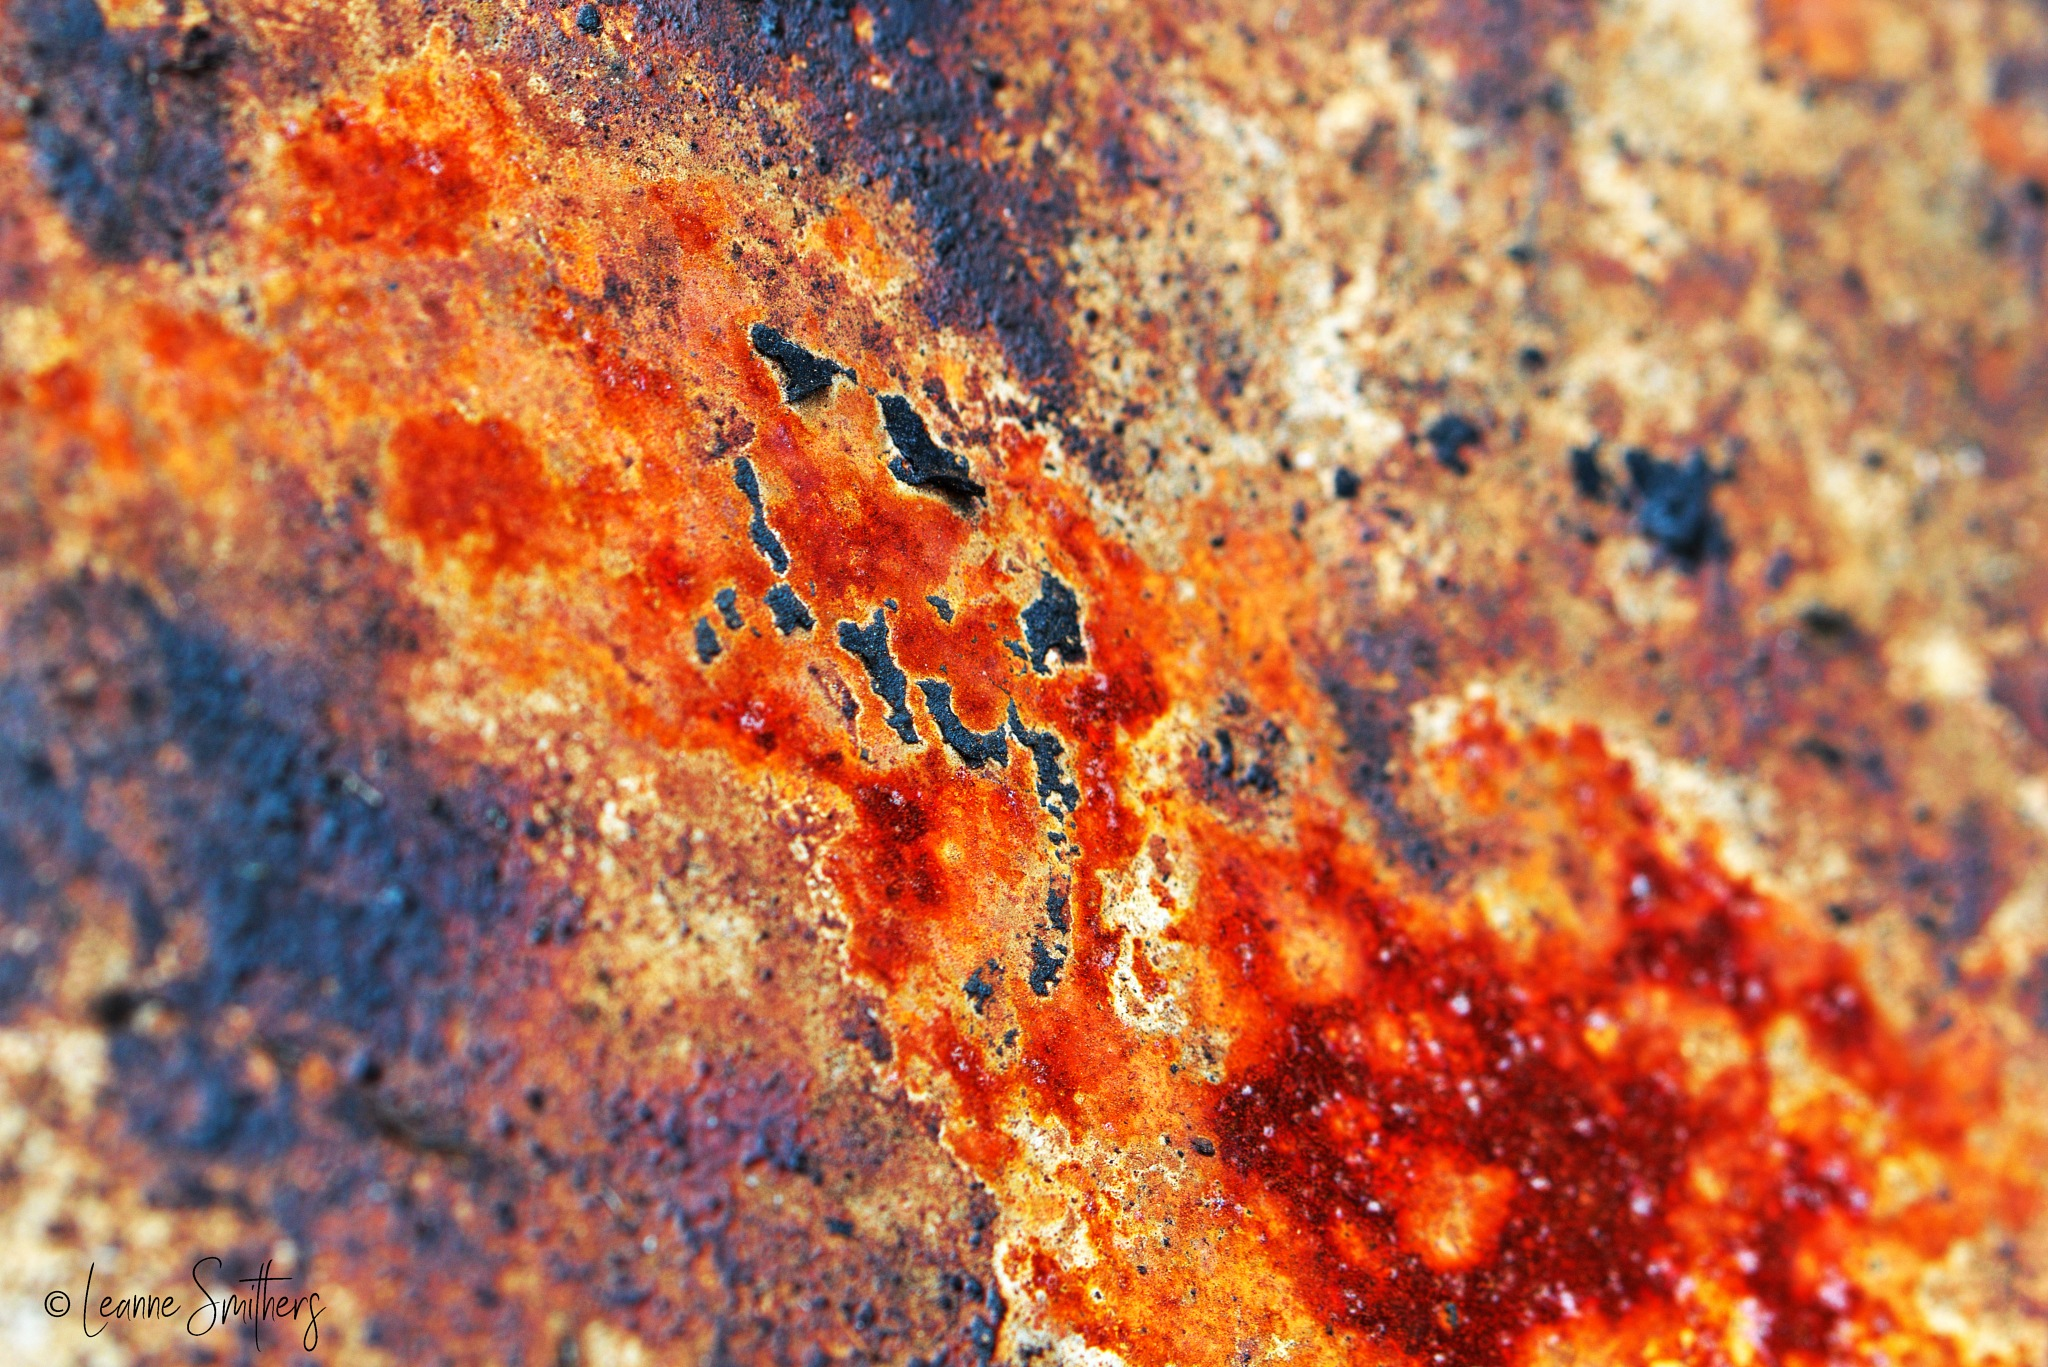 Rust & Grime by Leanne Smithers